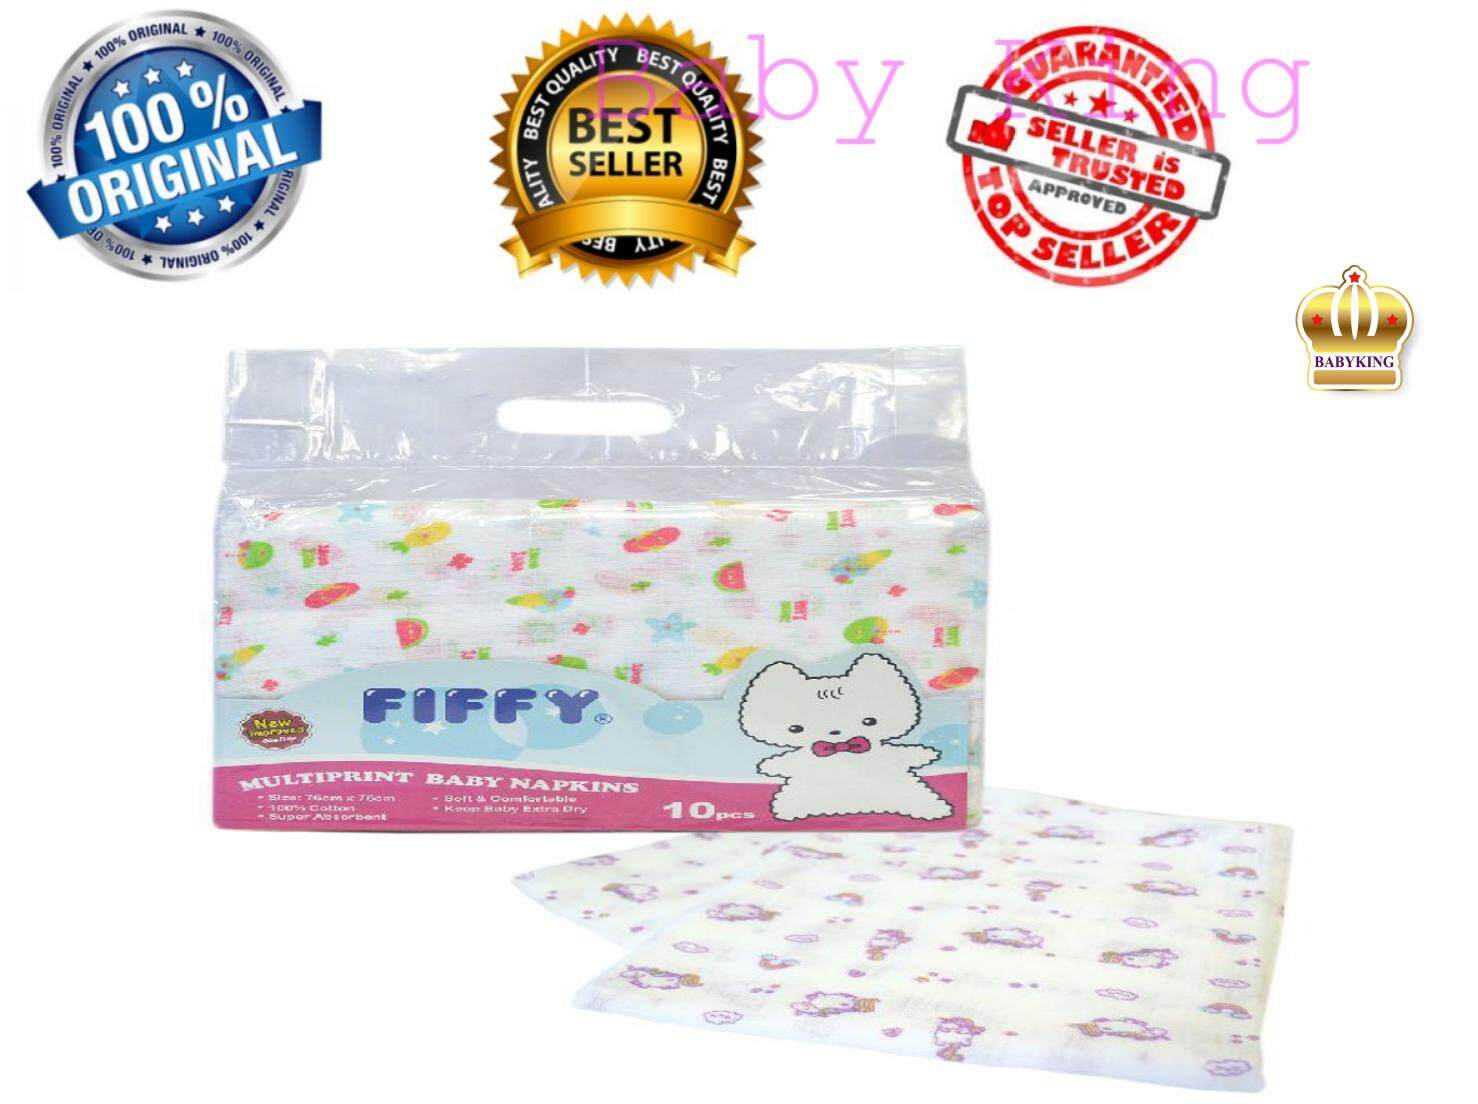 Original Fiffy Baby Napkins Napkin Multiprint Printed - 76cm X 76cm (10 Pcs) By Baby King.